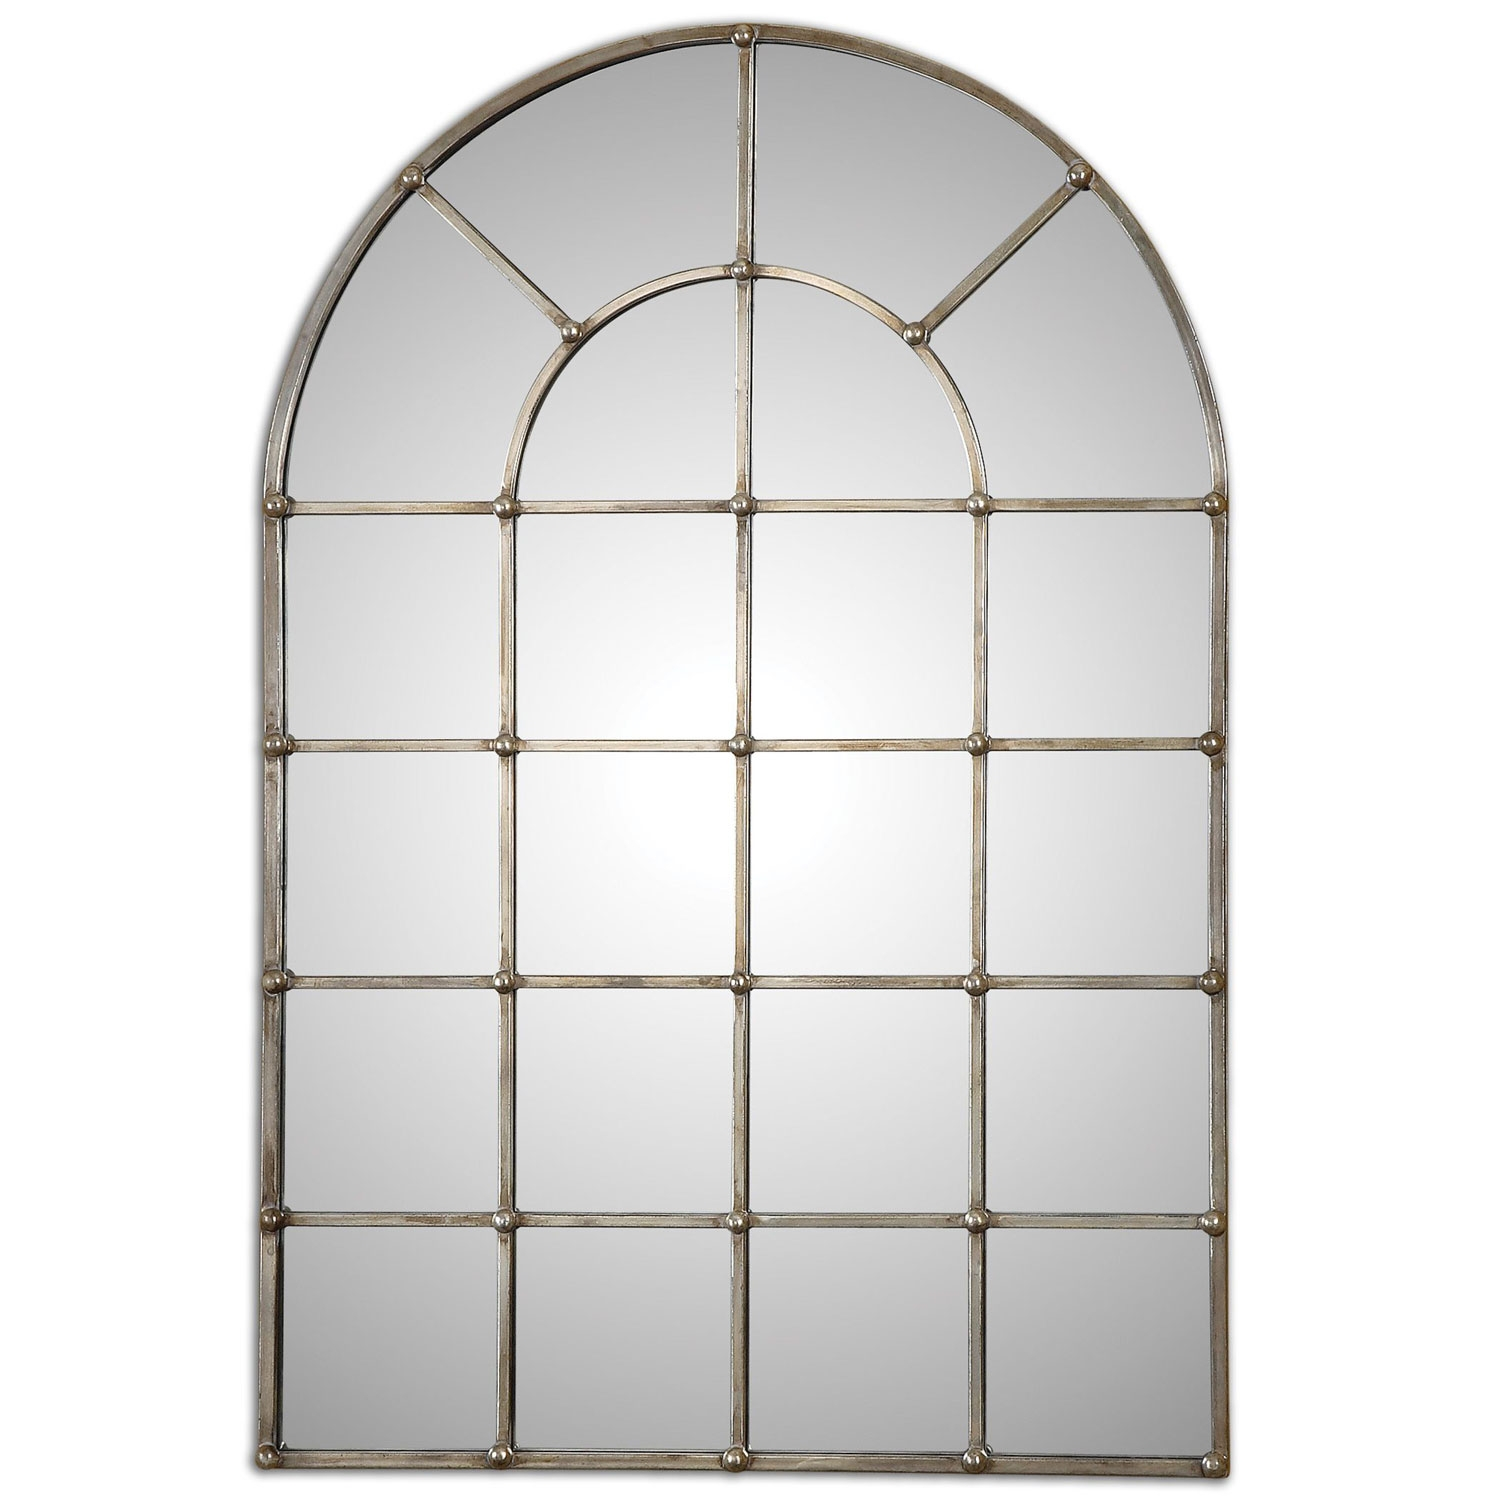 Stunning Design Arched Wall Mirror Absolutely Smart Arched Wall Regarding Arched Mirrors (Image 14 of 15)